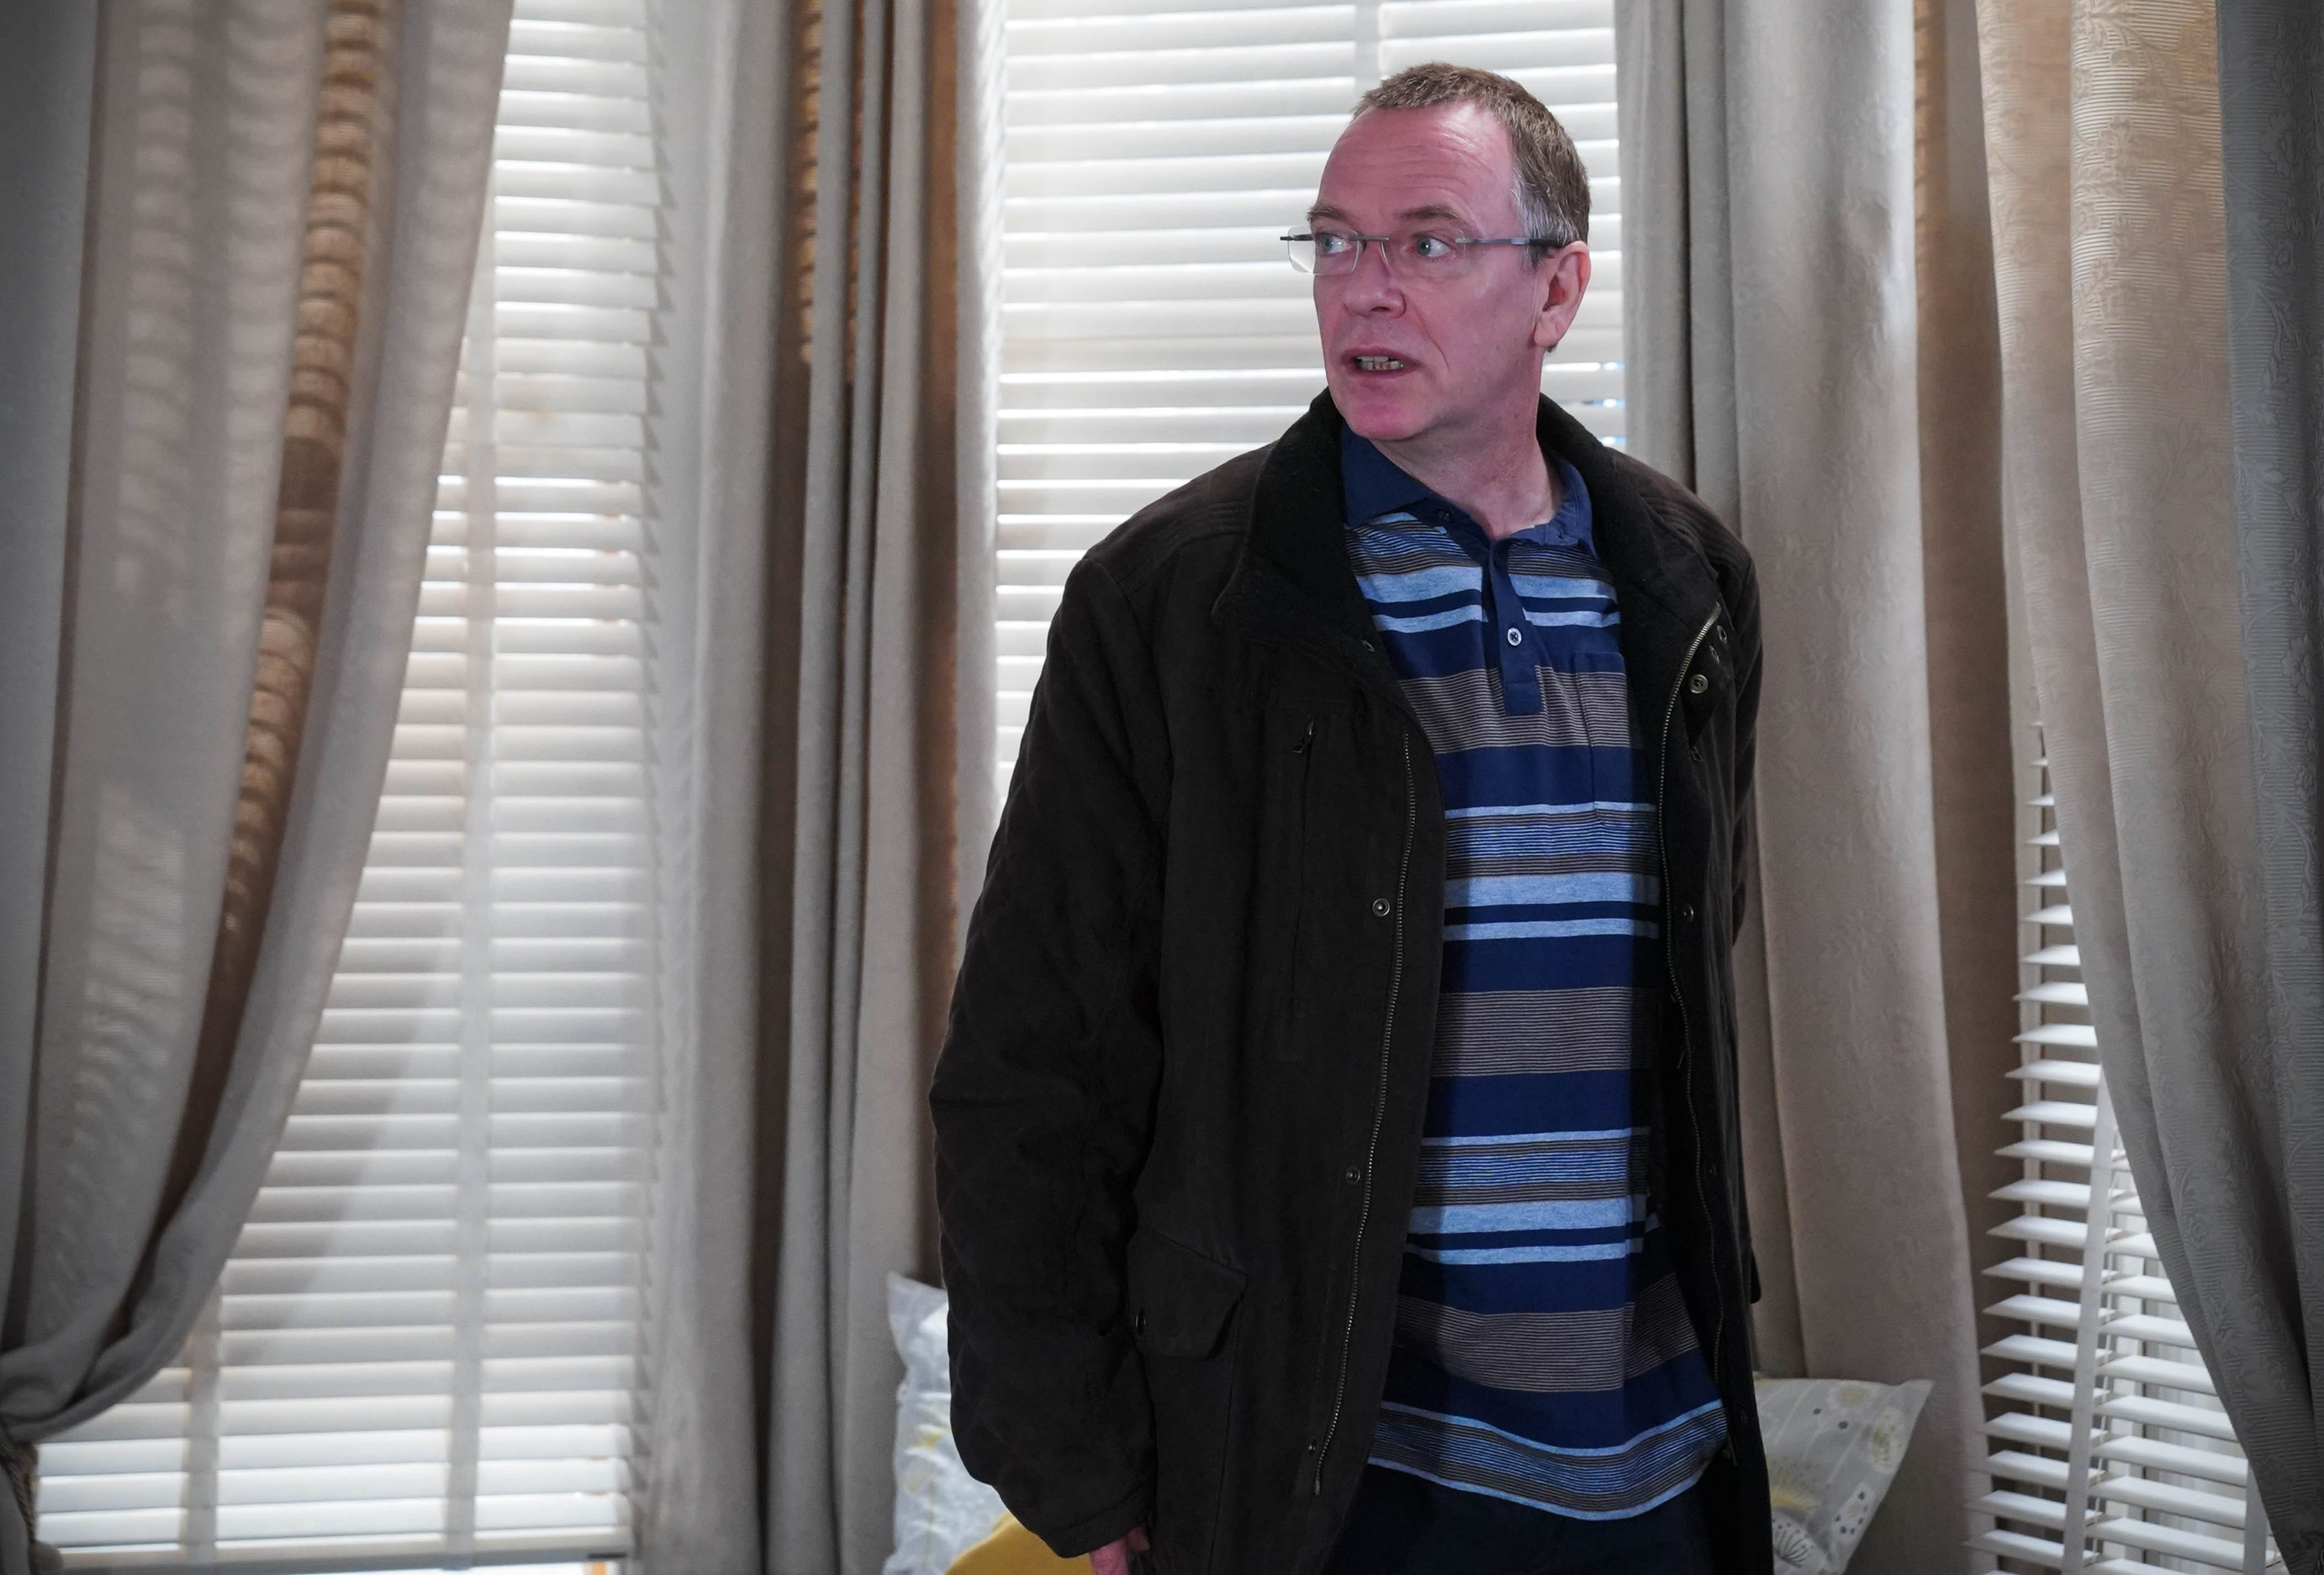 EastEnders spoilers: Ian Beale's attacker revealed as they head to kill him again